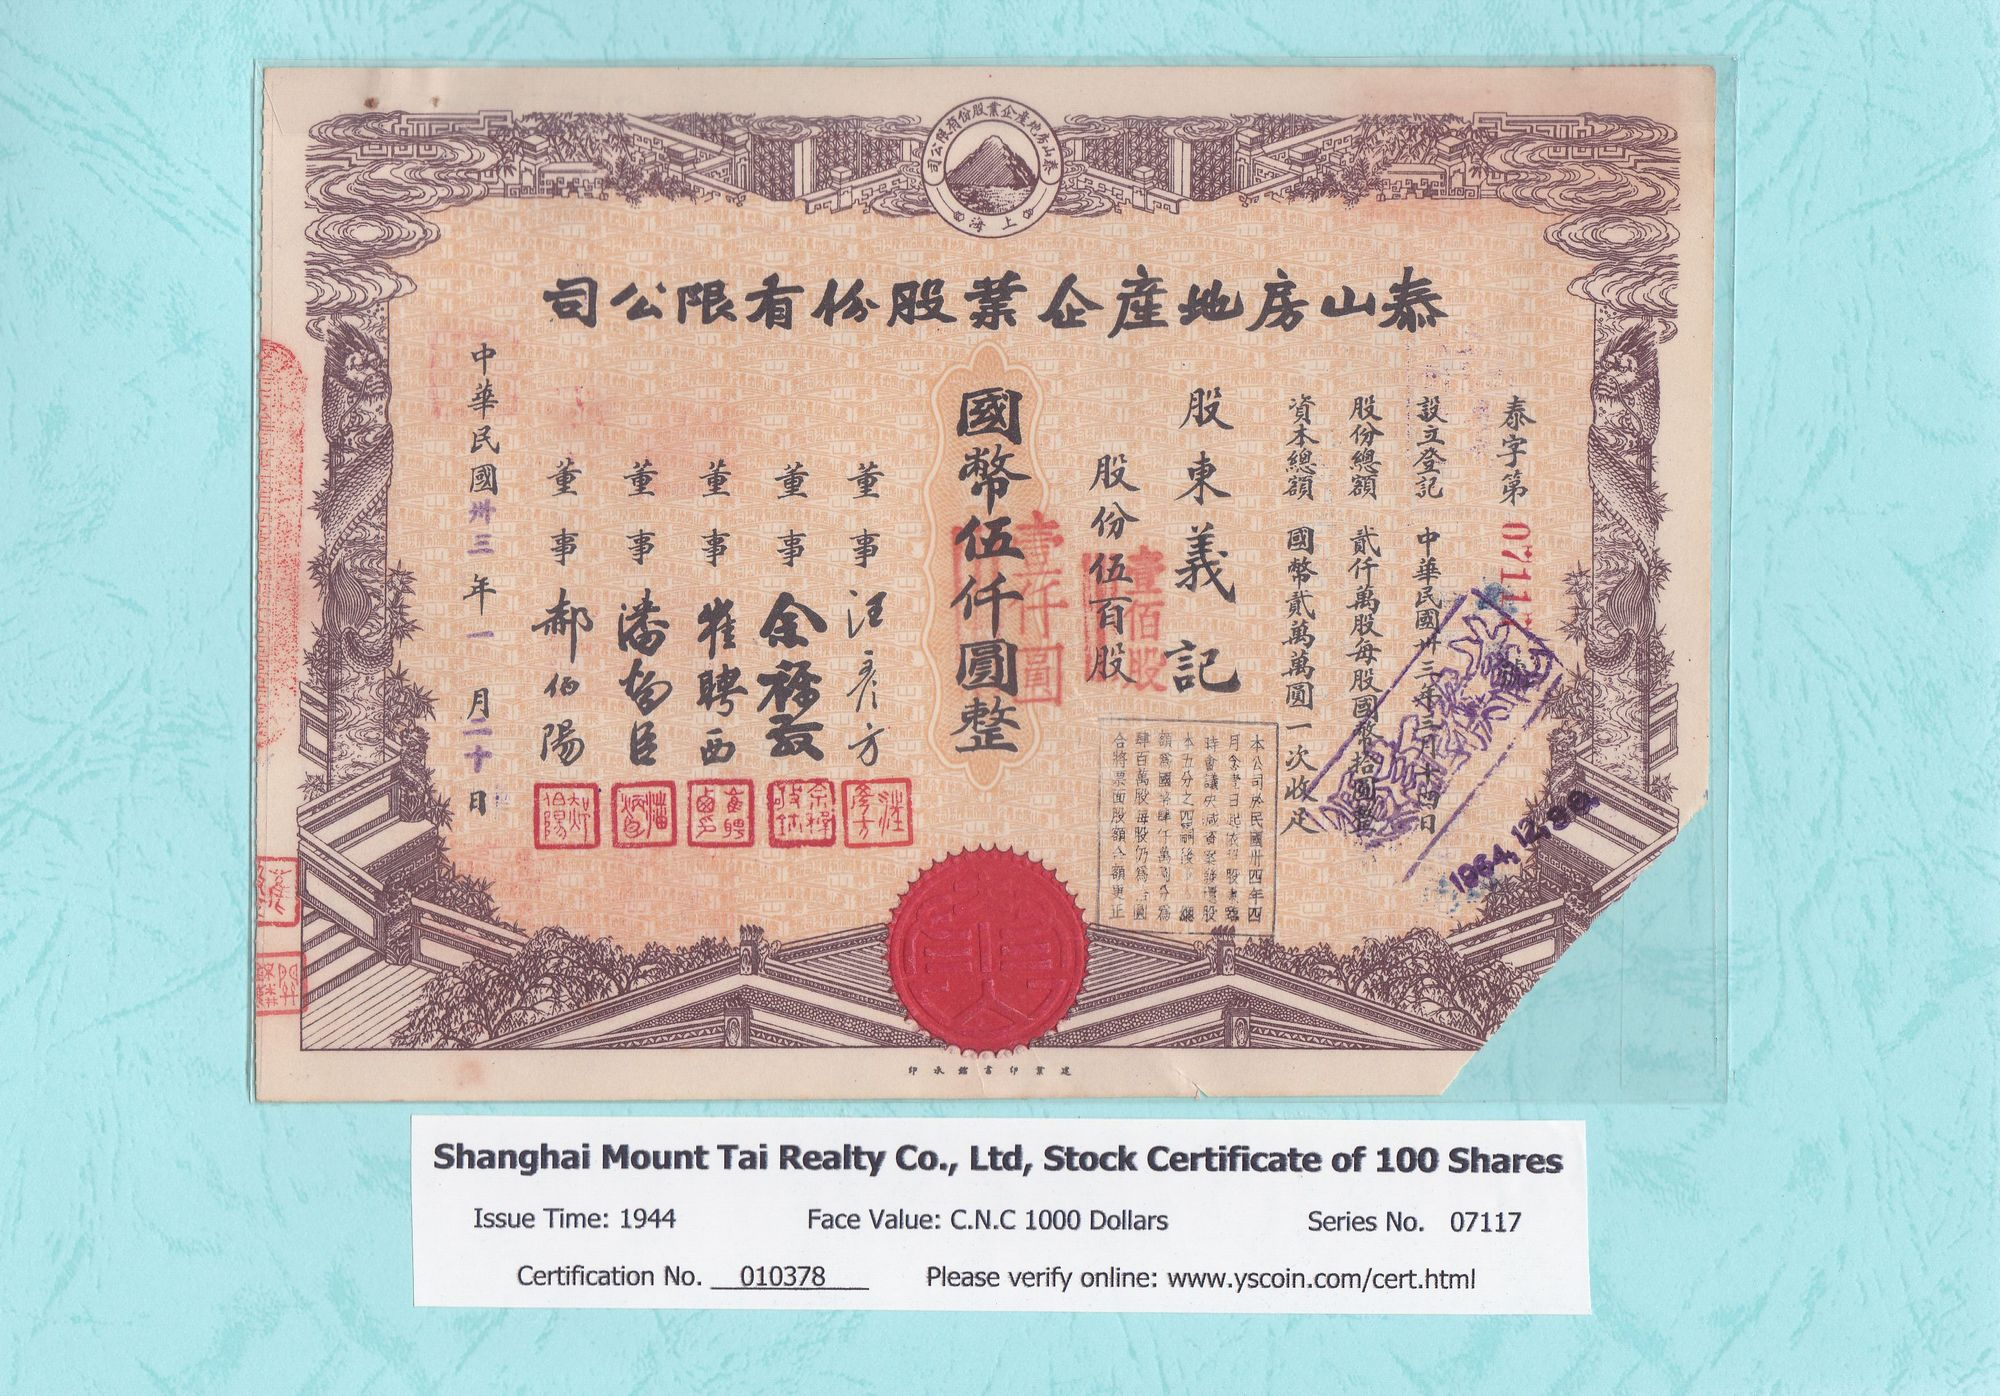 010378, Shanghai Mount Tai Realty Co., Ltd, Stock Certificate of 100 Shares